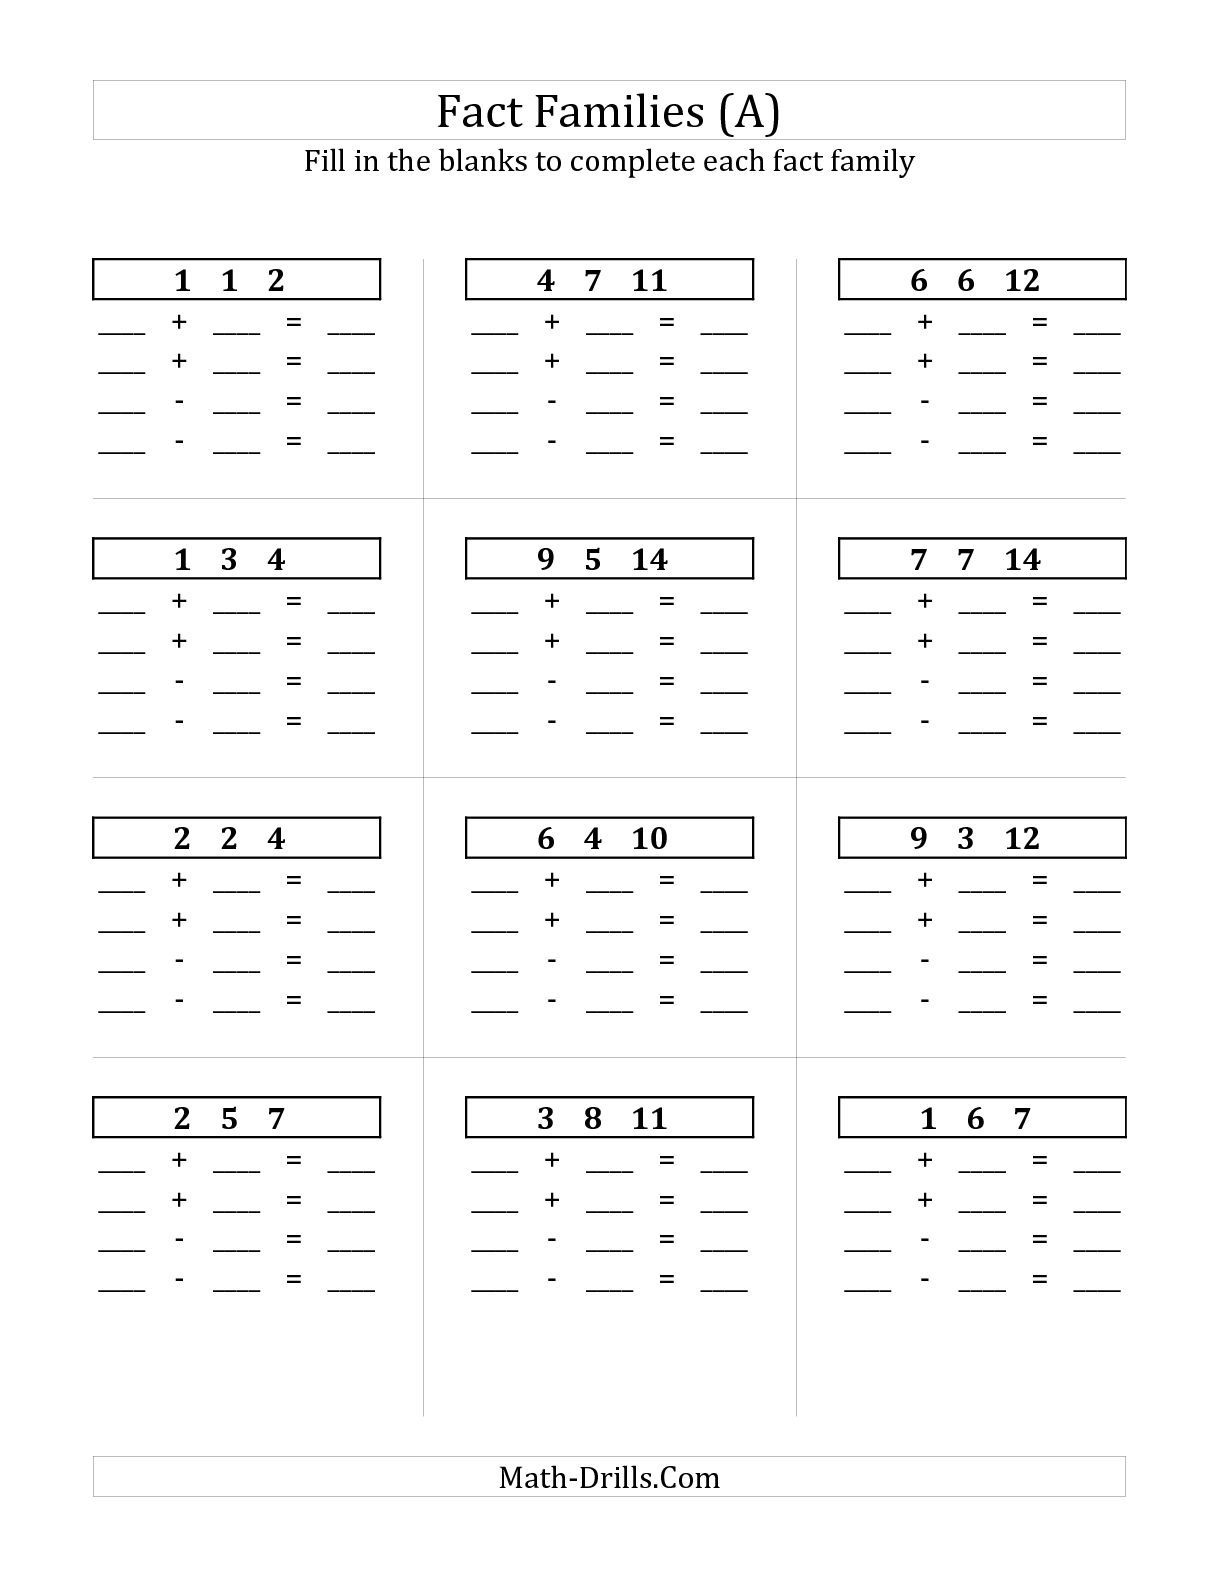 Uncategorized Fill In The Blanks Maths Worksheets the addition and subtraction relationships with sums to 18 all blank a math